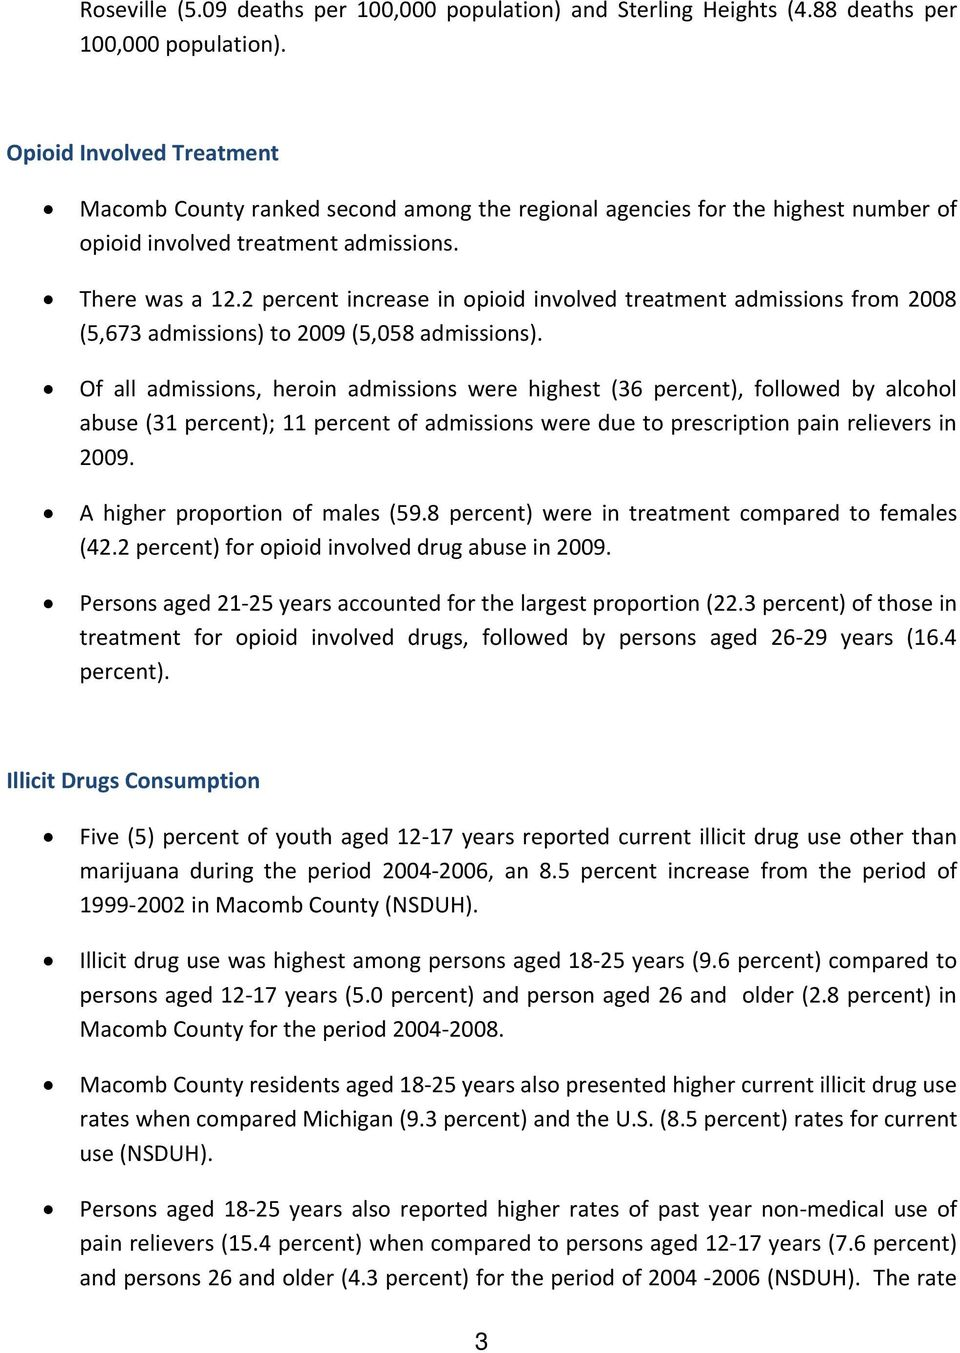 2 percent increase in opioid involved treatment admissions from 2008 (5,673 admissions) to 2009 (5,058 admissions).